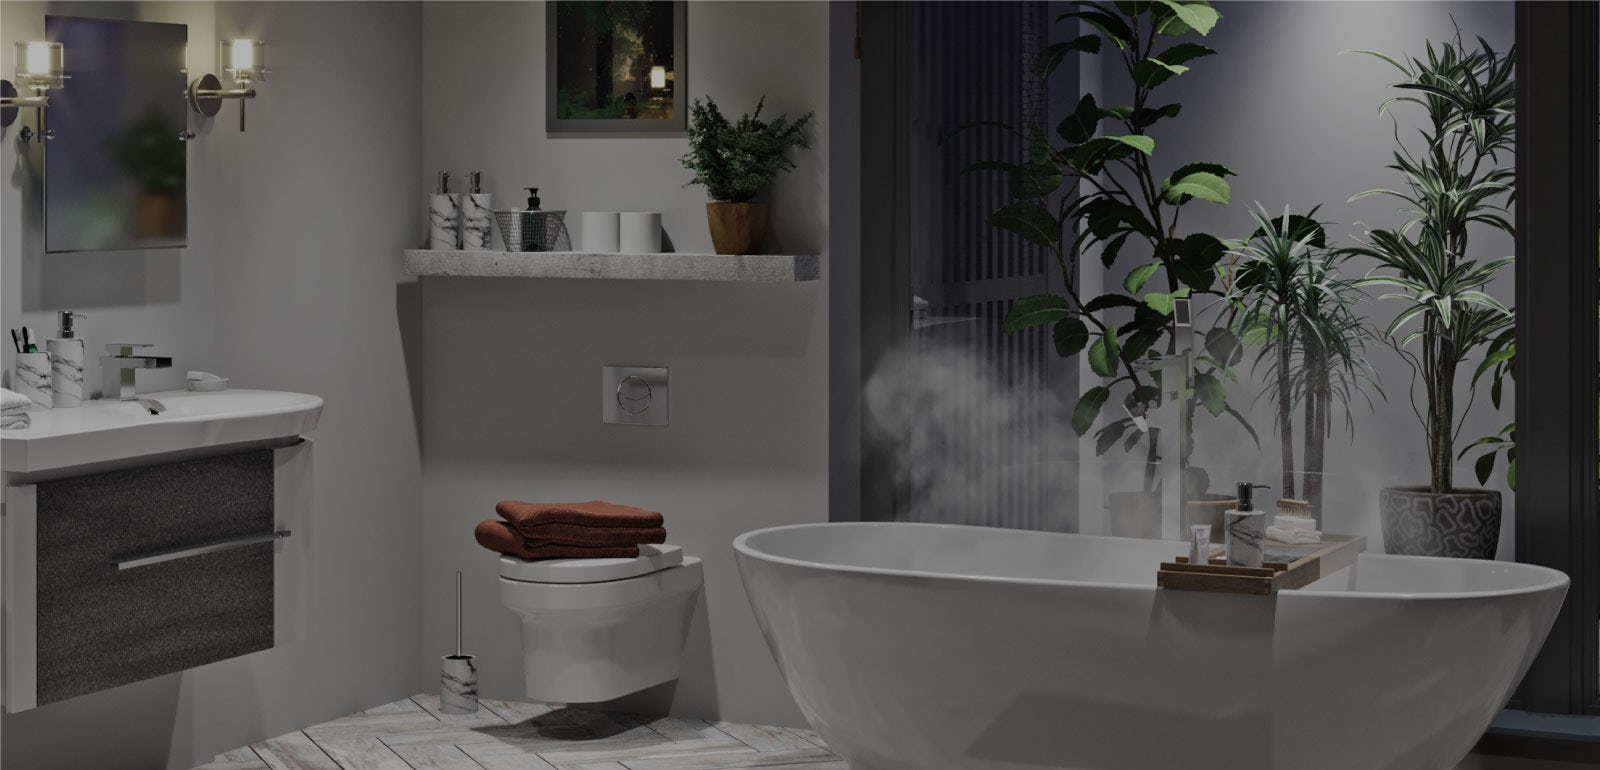 Bathroom Ideas: Natural Elements part 4